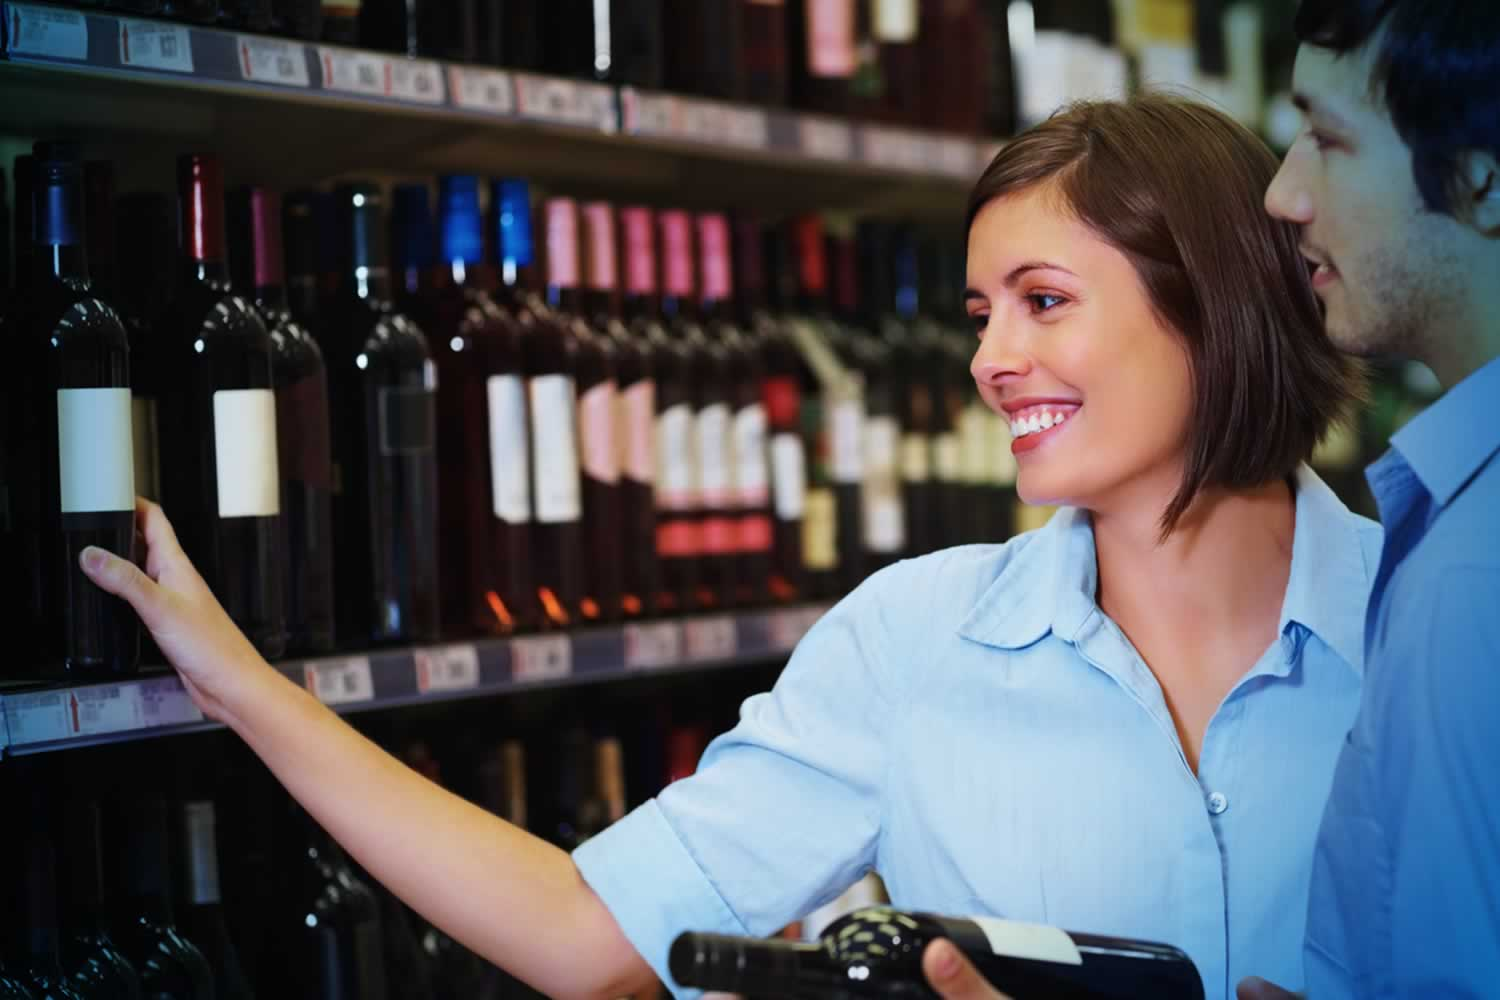 Dangers of taking video of liquor thefts another strike against alcohol privatization; OPSEU says